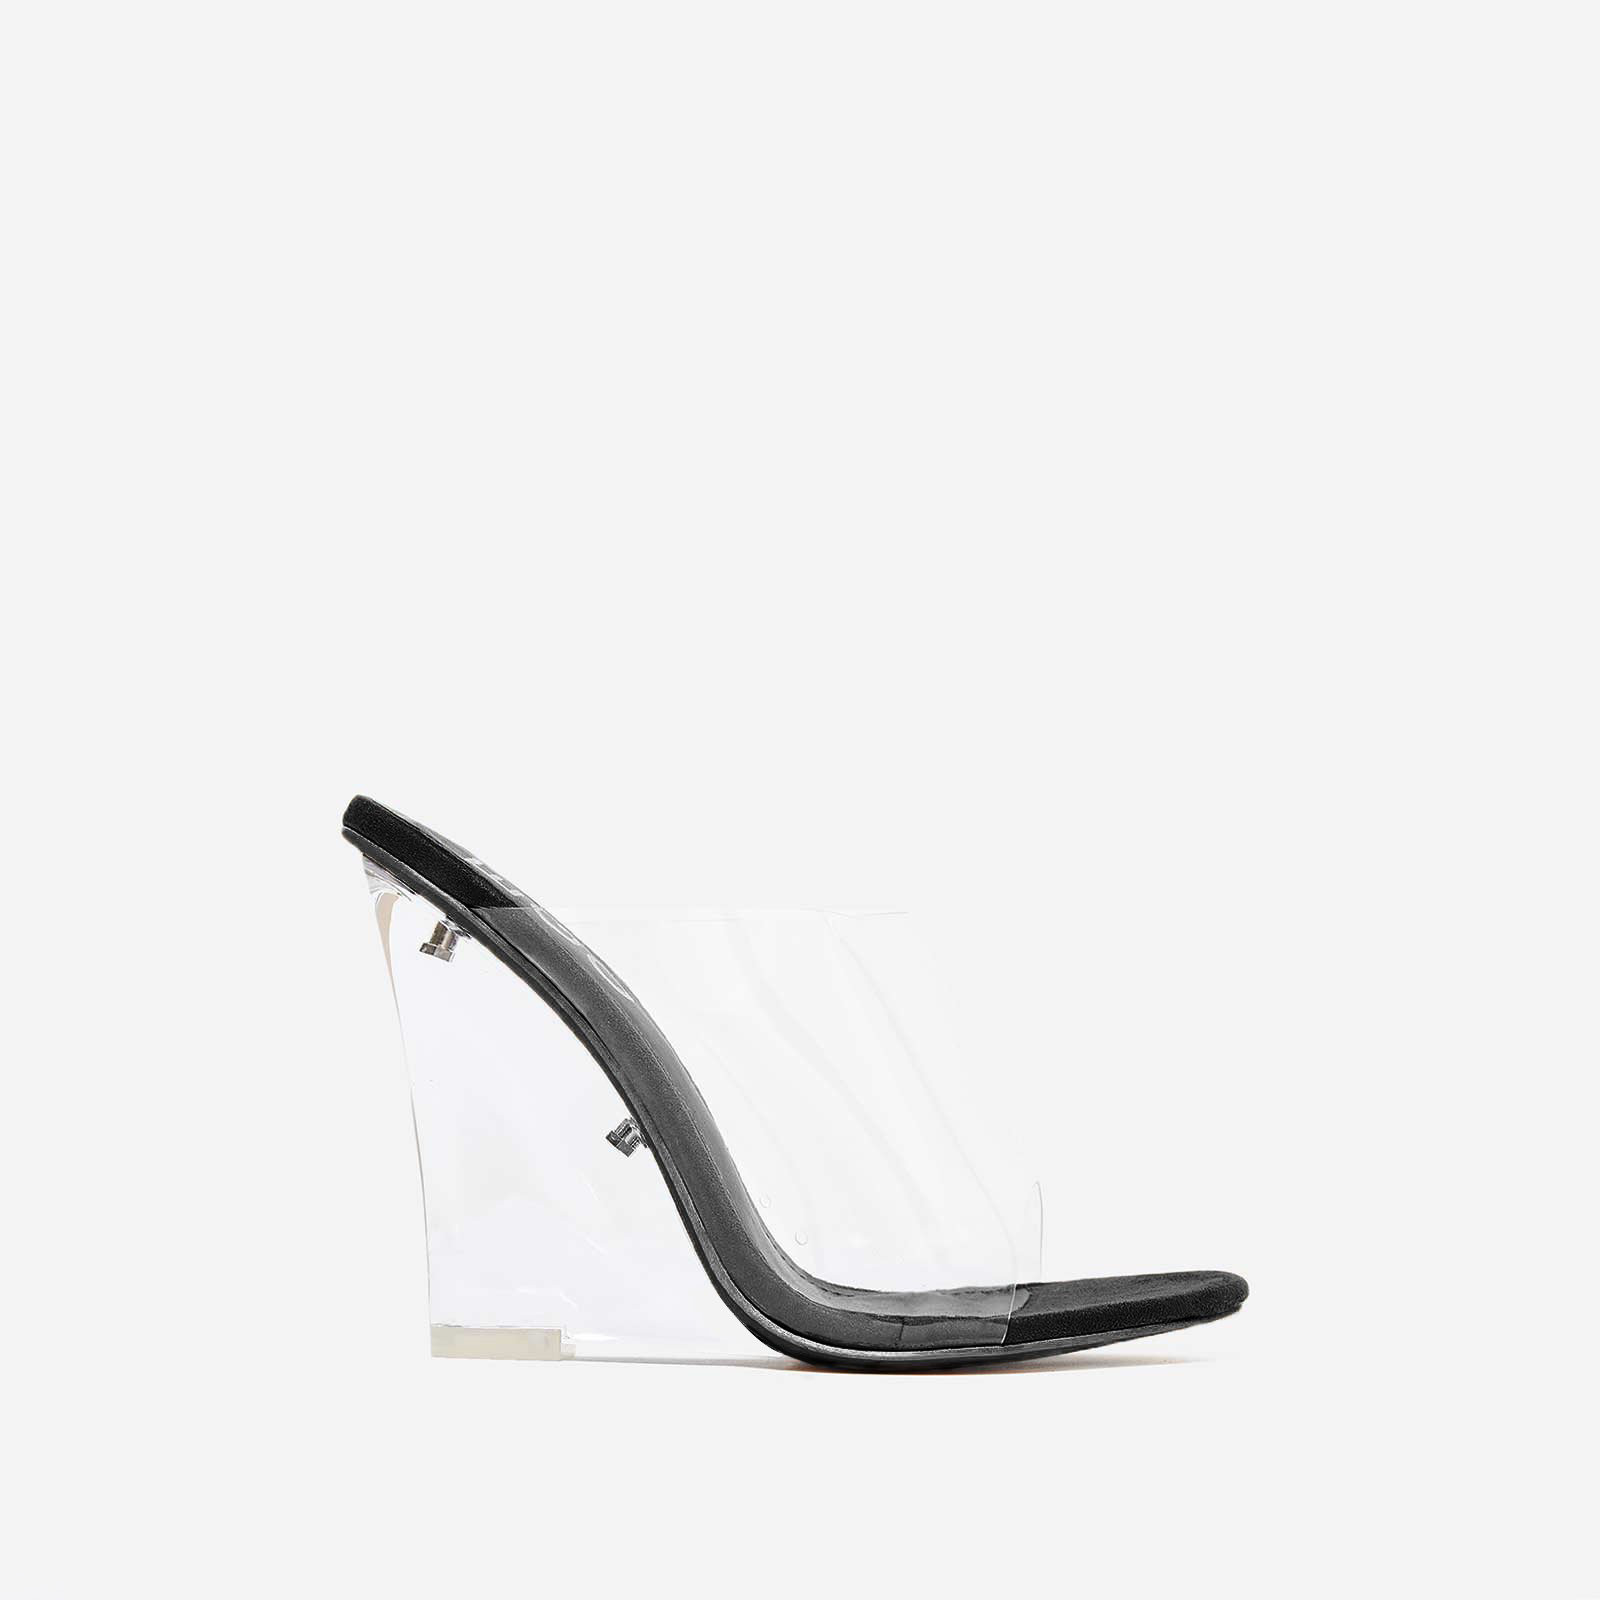 Womens Perspex Heels Shoes Ego Shoes